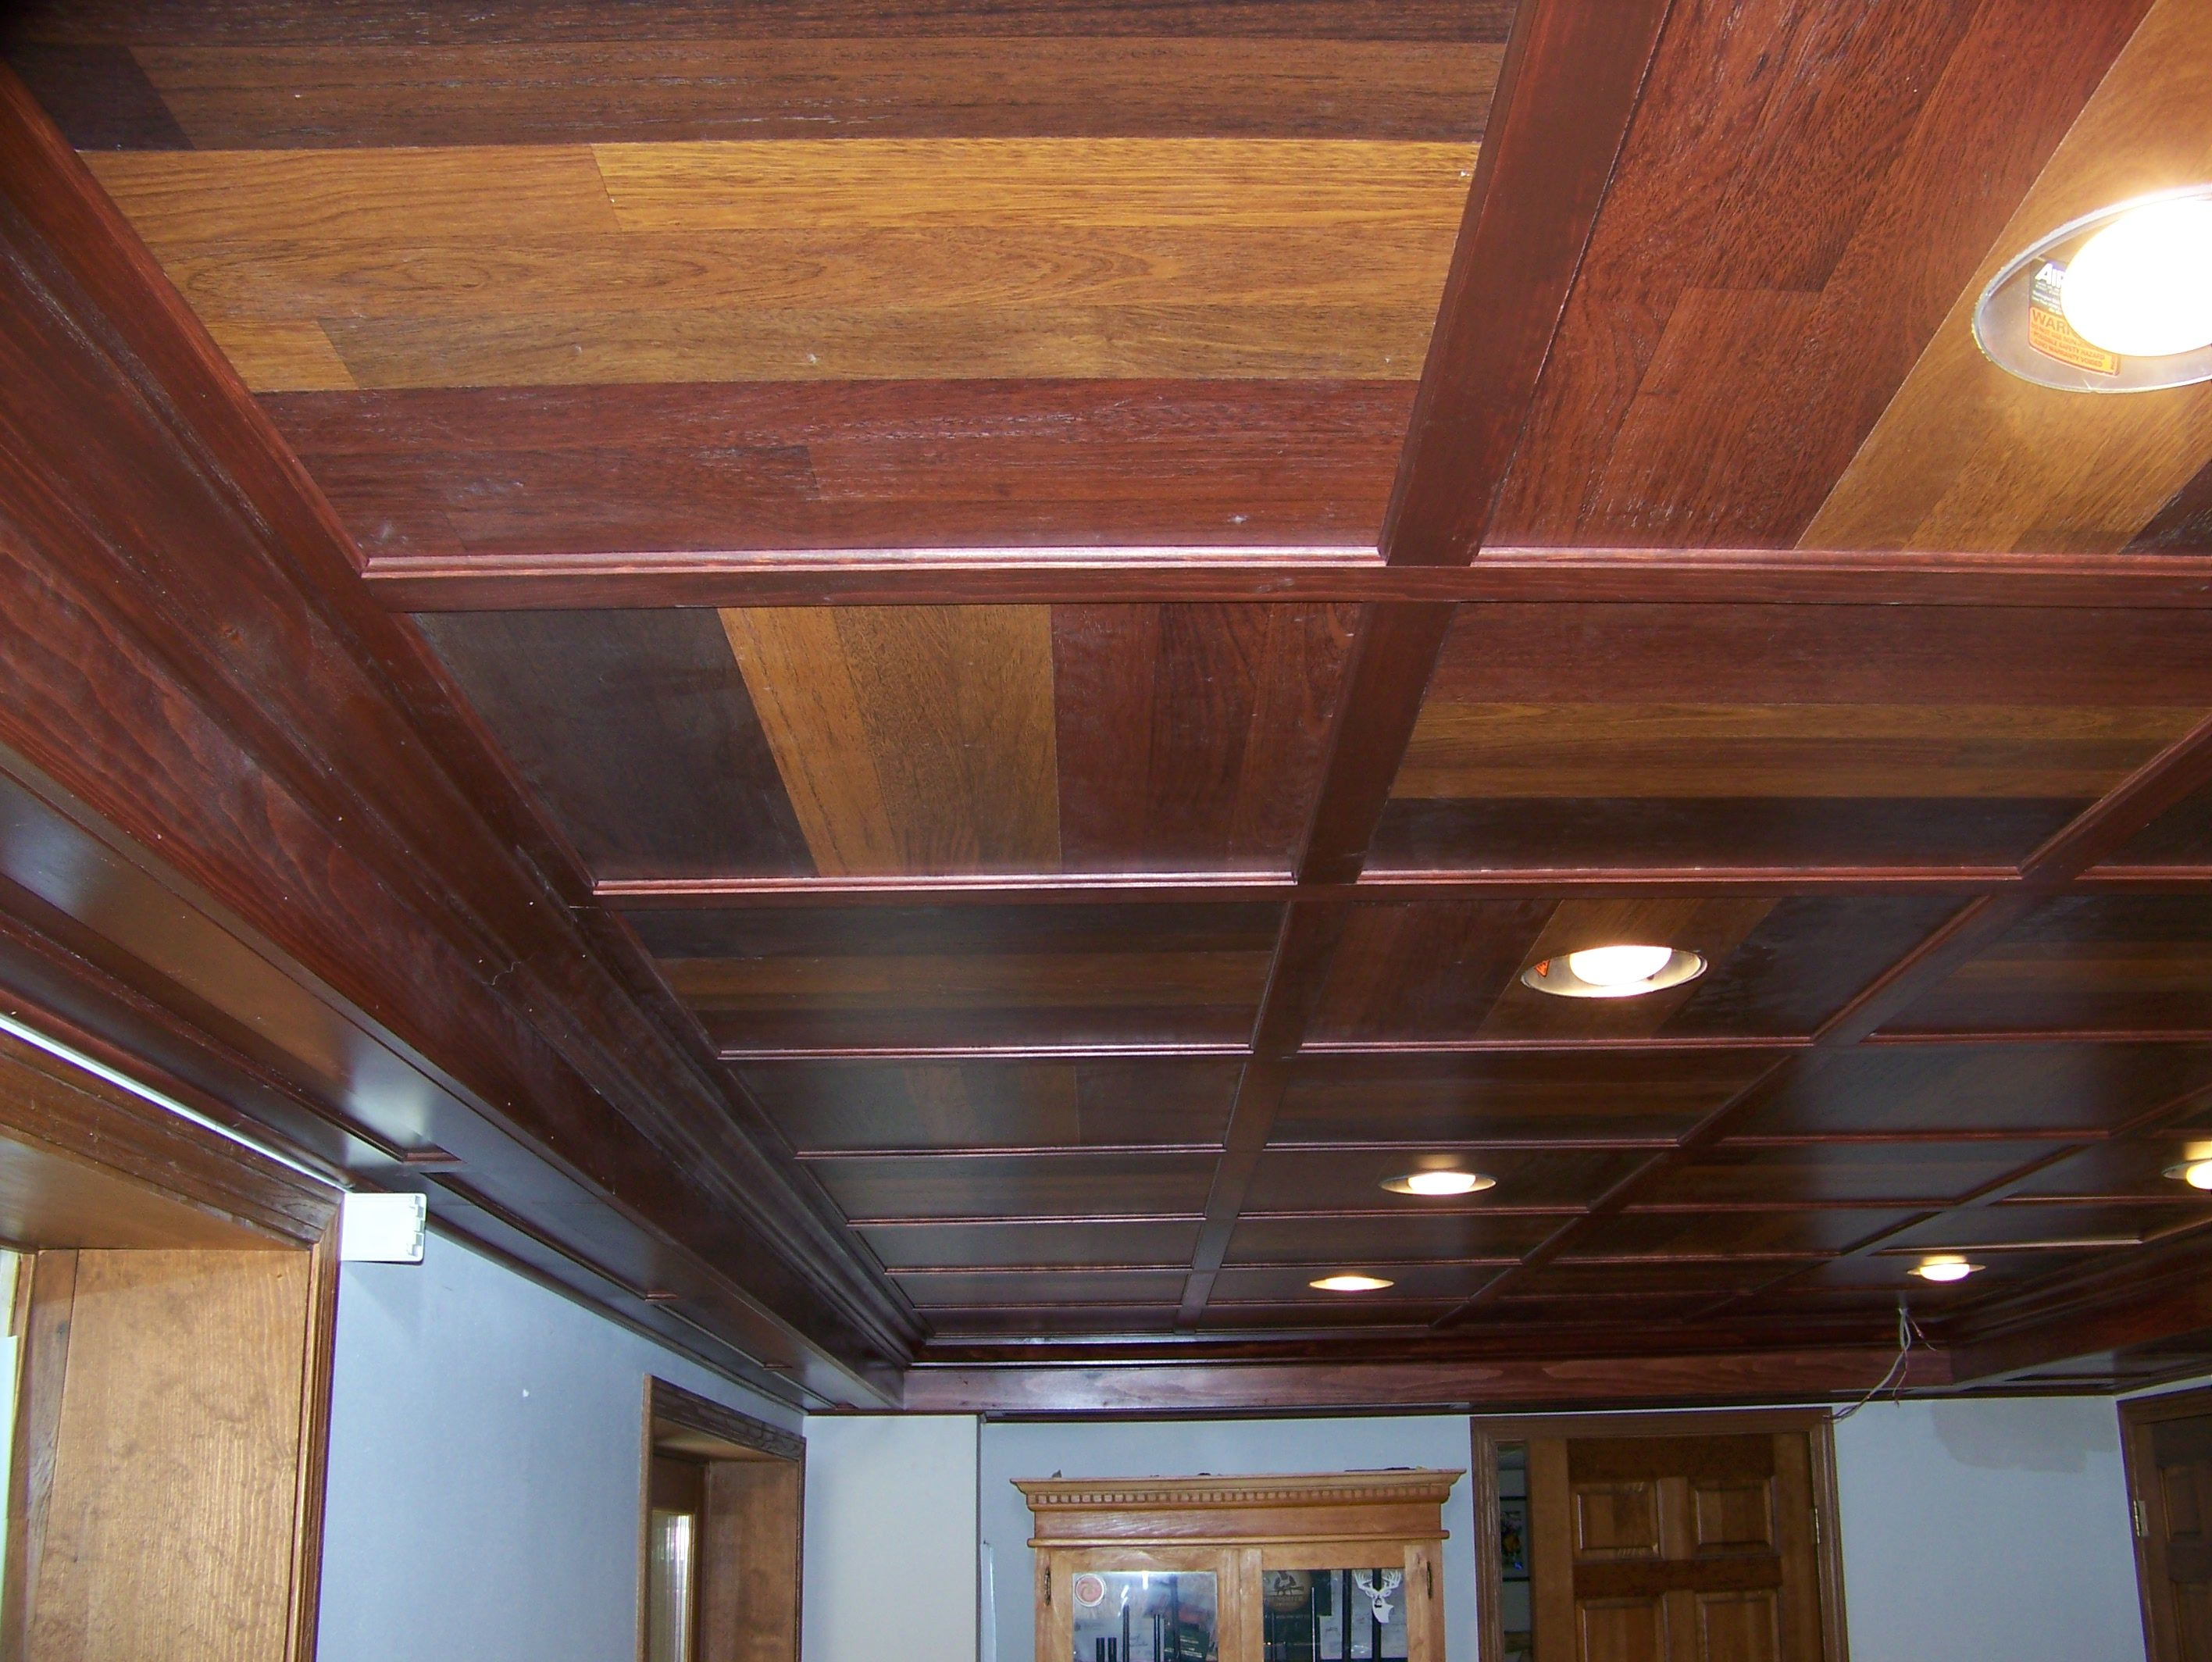 Wooden basement ceiling with modern lighting drop ceiling tiles wooden basement ceiling with modern lighting doublecrazyfo Choice Image